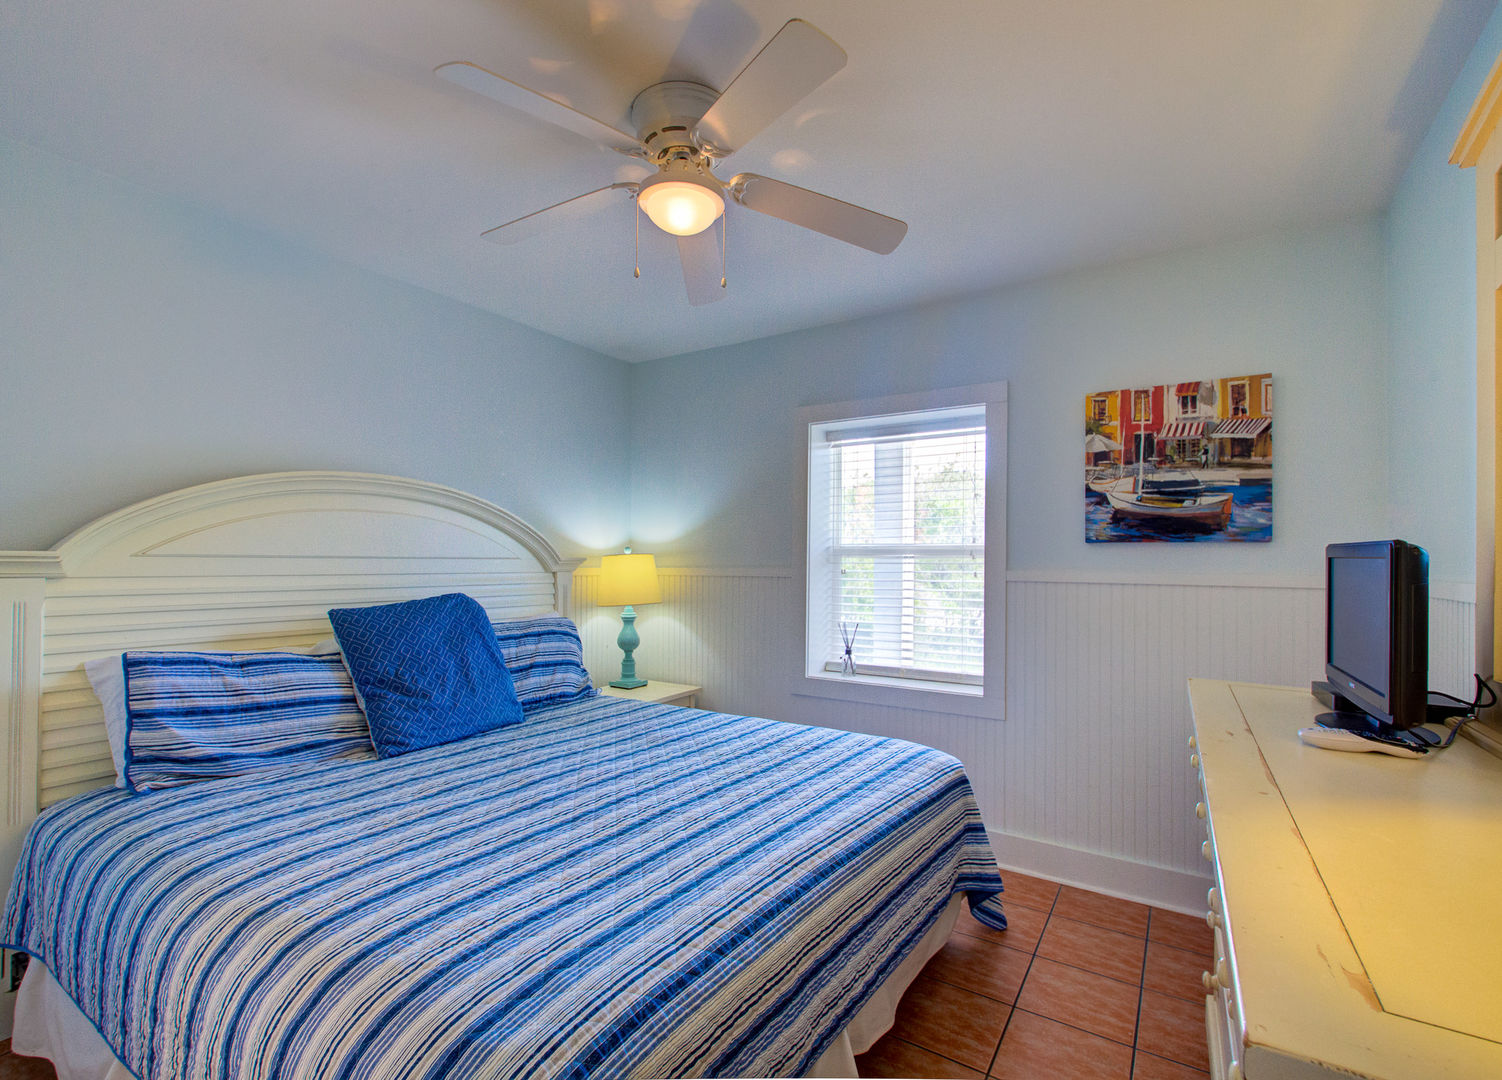 Bedroom with Large Bed, Drawer Dresser, TV, and Ceiling Fan.